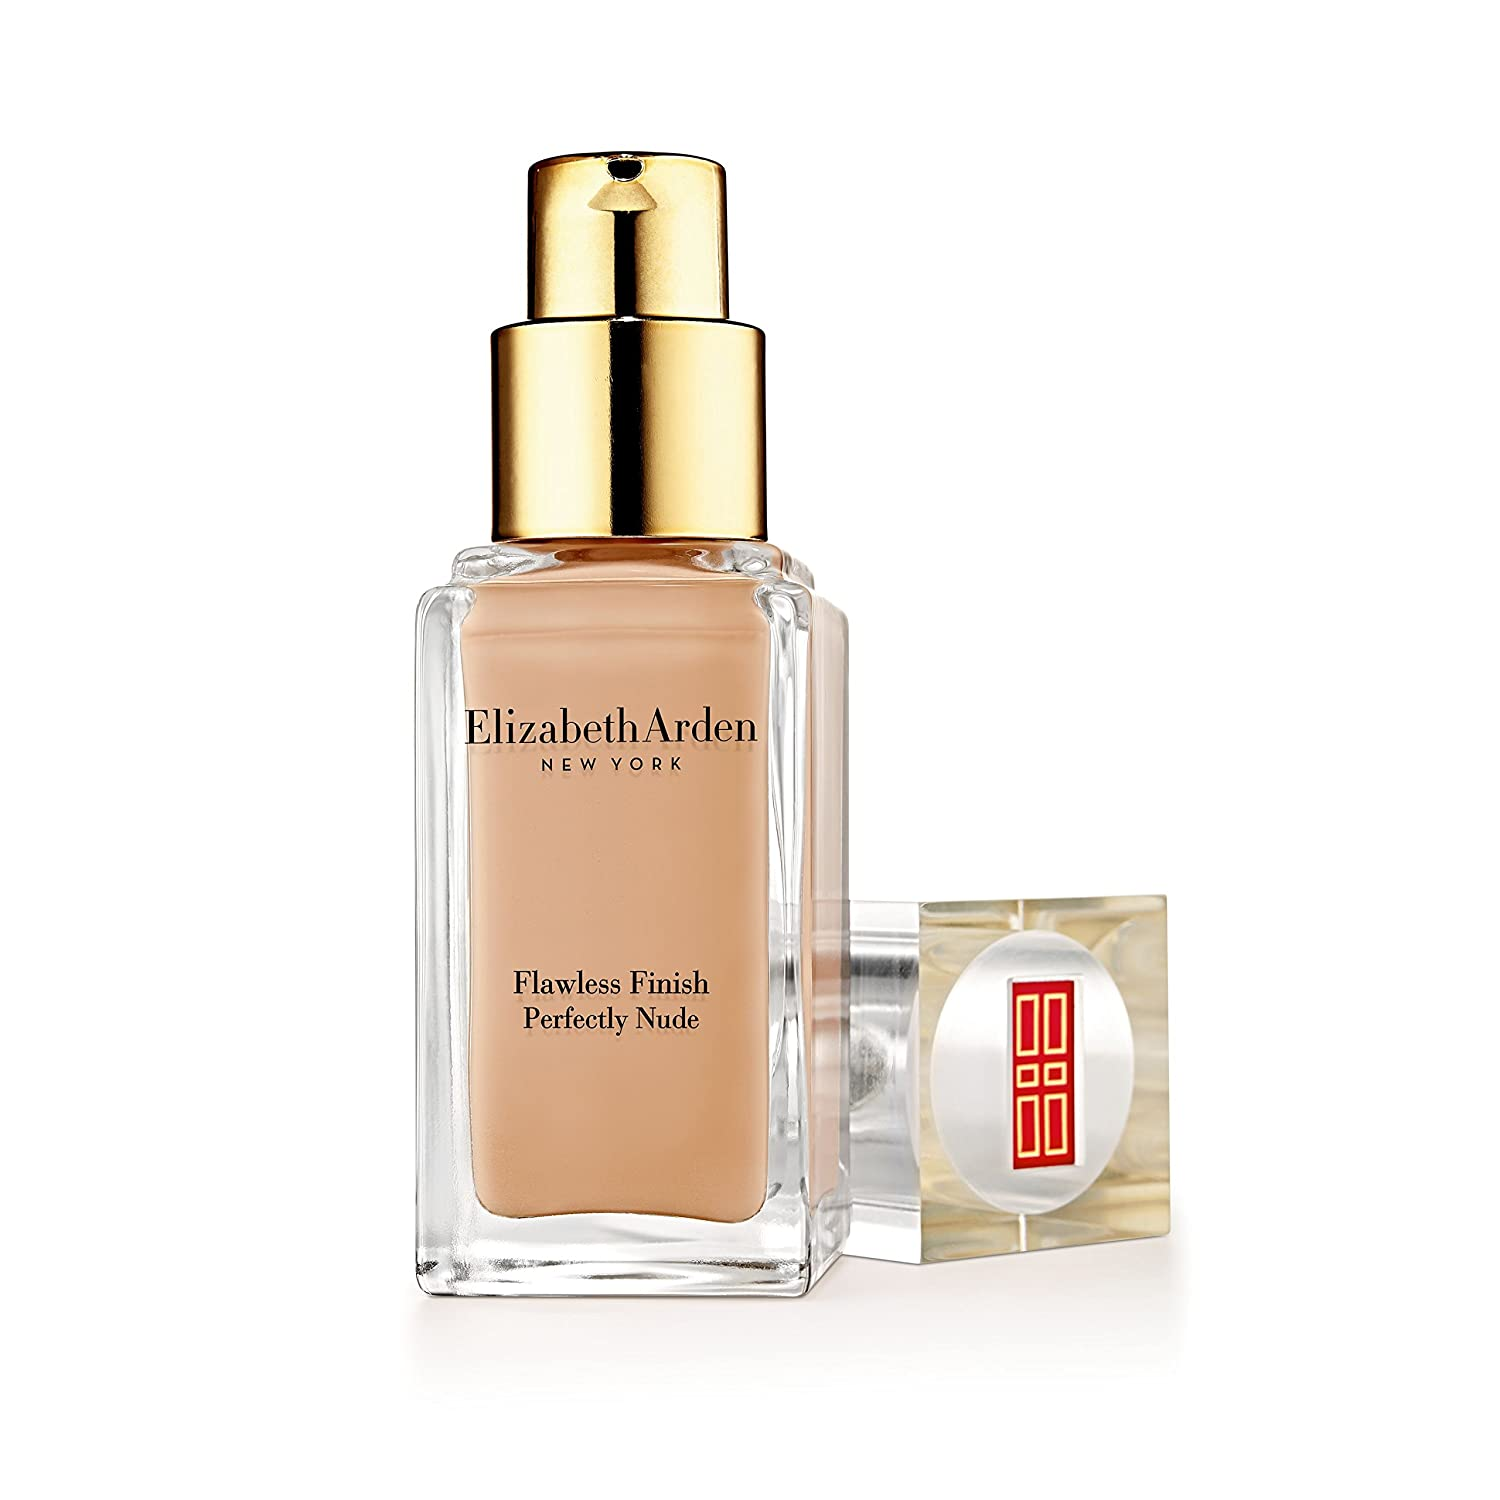 Elizabeth Arden Flawless Finish Perfectly Nude Makeup SPF 15, No.05 Natural Foundation, 1 Ounce